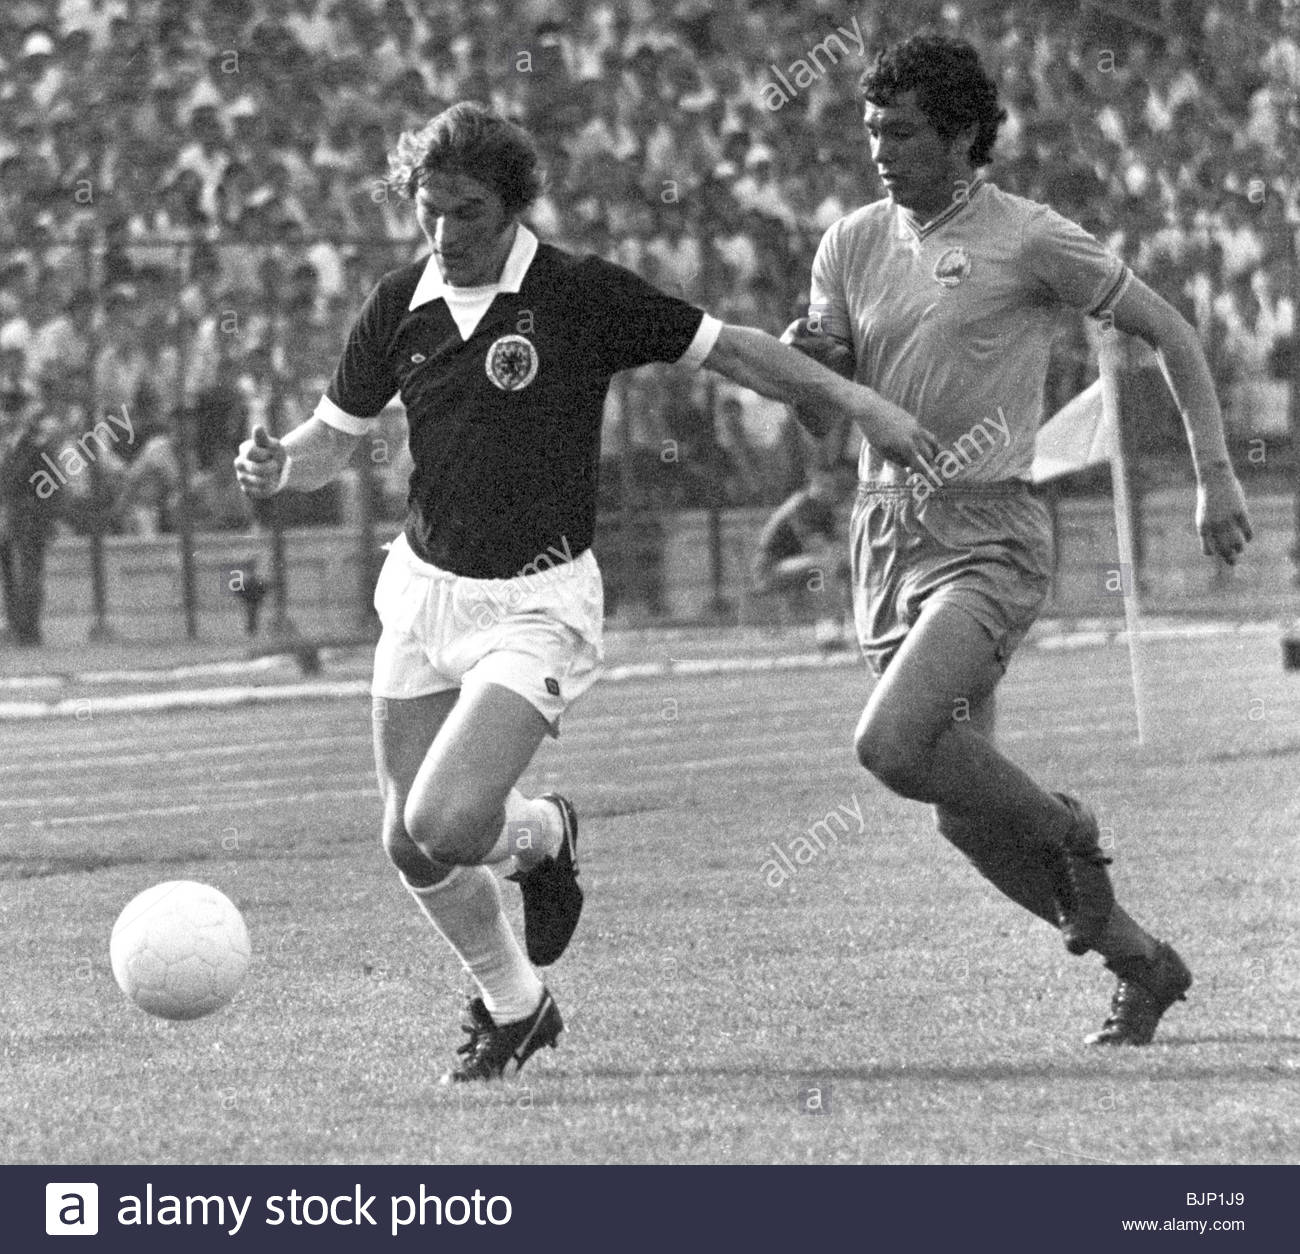 01/06/75 EUROPEAN CHAMPIONSHIP QUALIFIER ROMANIA V SCOTLAND (1-1) 23 AUGUST STADIONUL - BUCHAREST Scotland striker - Stock Image